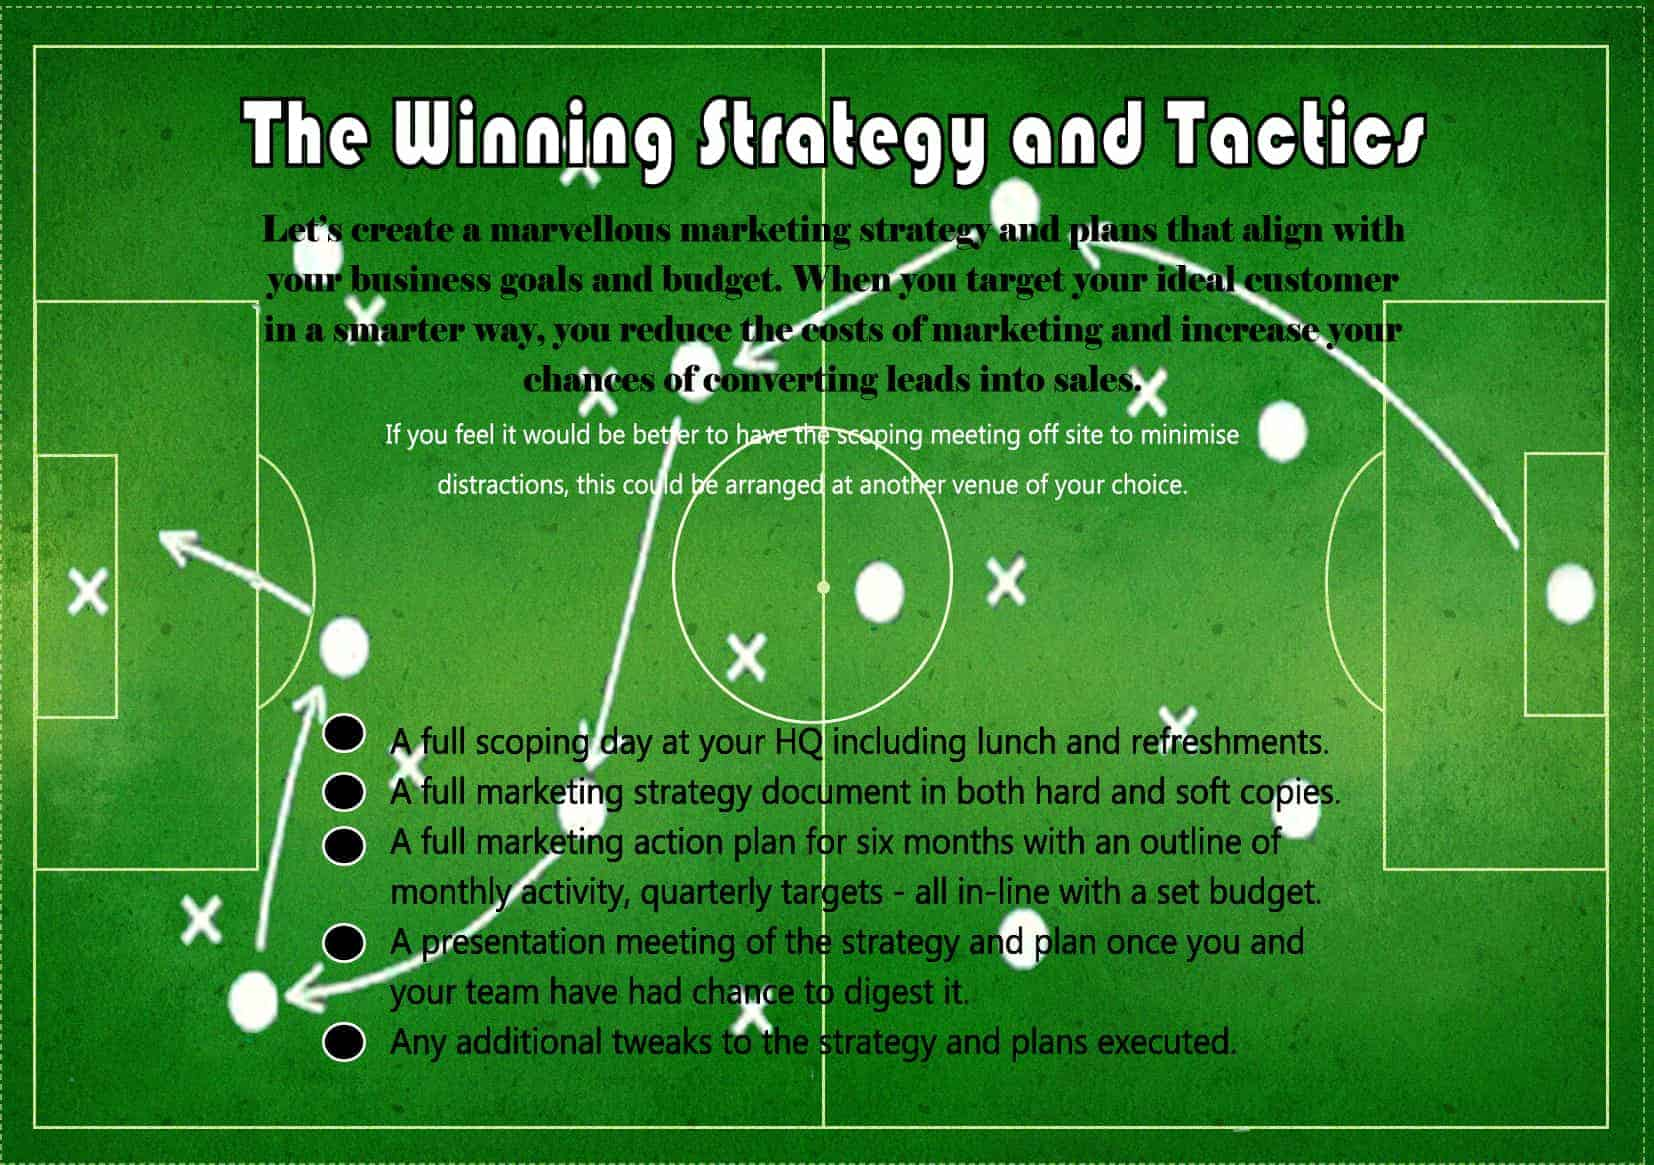 The Winning Strategy and Tactics